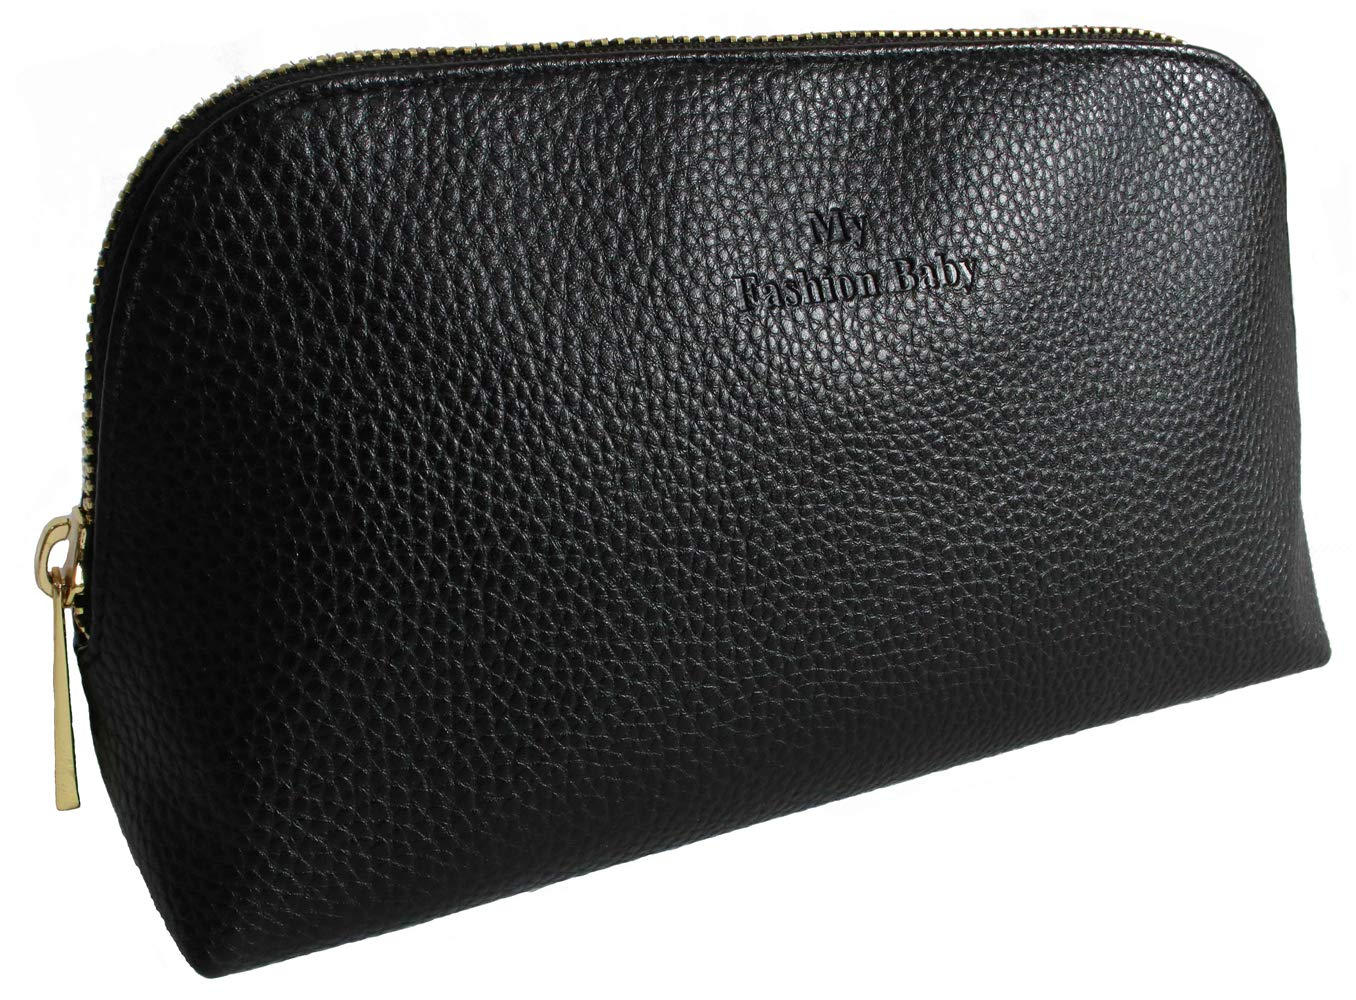 Medium Travel Makeup Bag for Women's Accessories & Toiletries Leather Cosmetic Pouch Travel Organizer Toiletry Clutch,Black